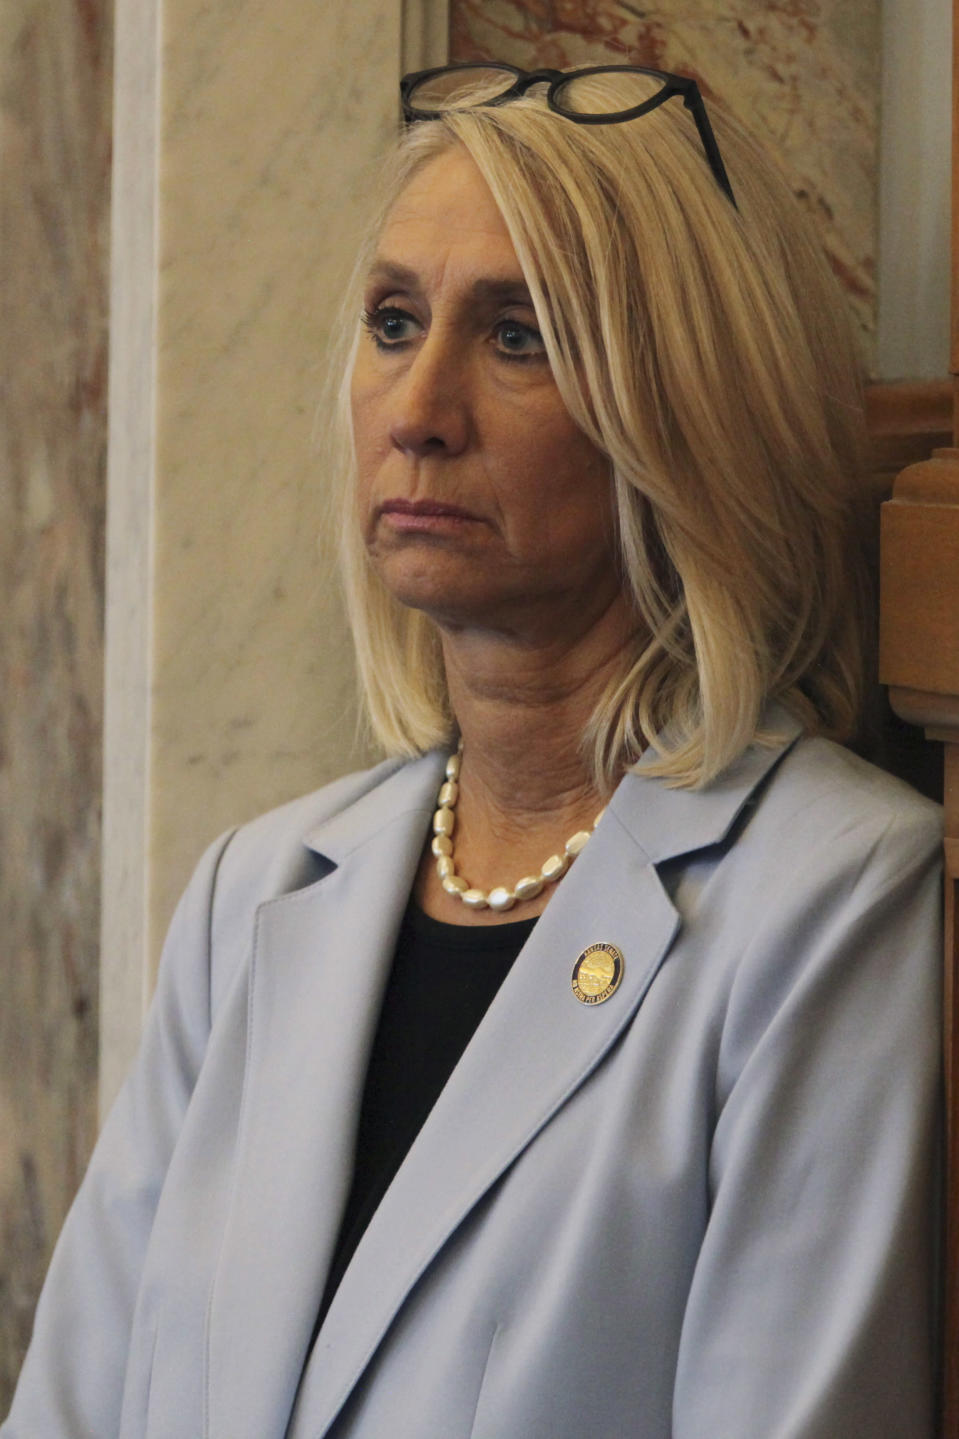 Kansas state Sen. Renee Erickson, R-Wichita, watches a debate in the House from the side of the chamber, Thursday, April 8, 2021, at the Statehouse in Topeka, Kan. Erickson is the primary sponsor of a proposal to ban transgender athletes from girls' and women's school sports, arguing that such a measure would protect the fairness of competition. (AP Photo/John Hanna)